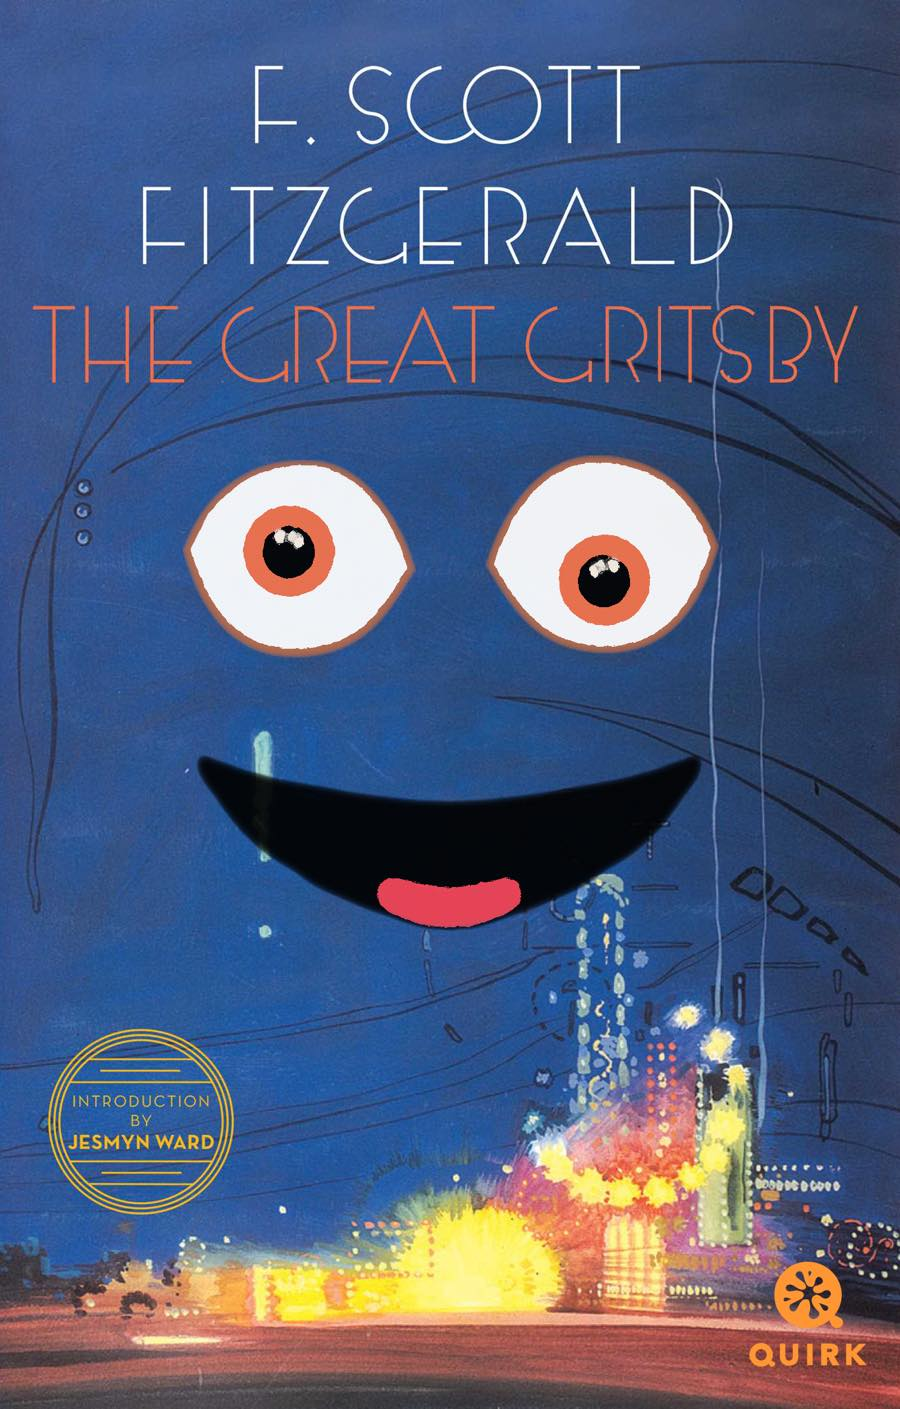 Gritty book cover